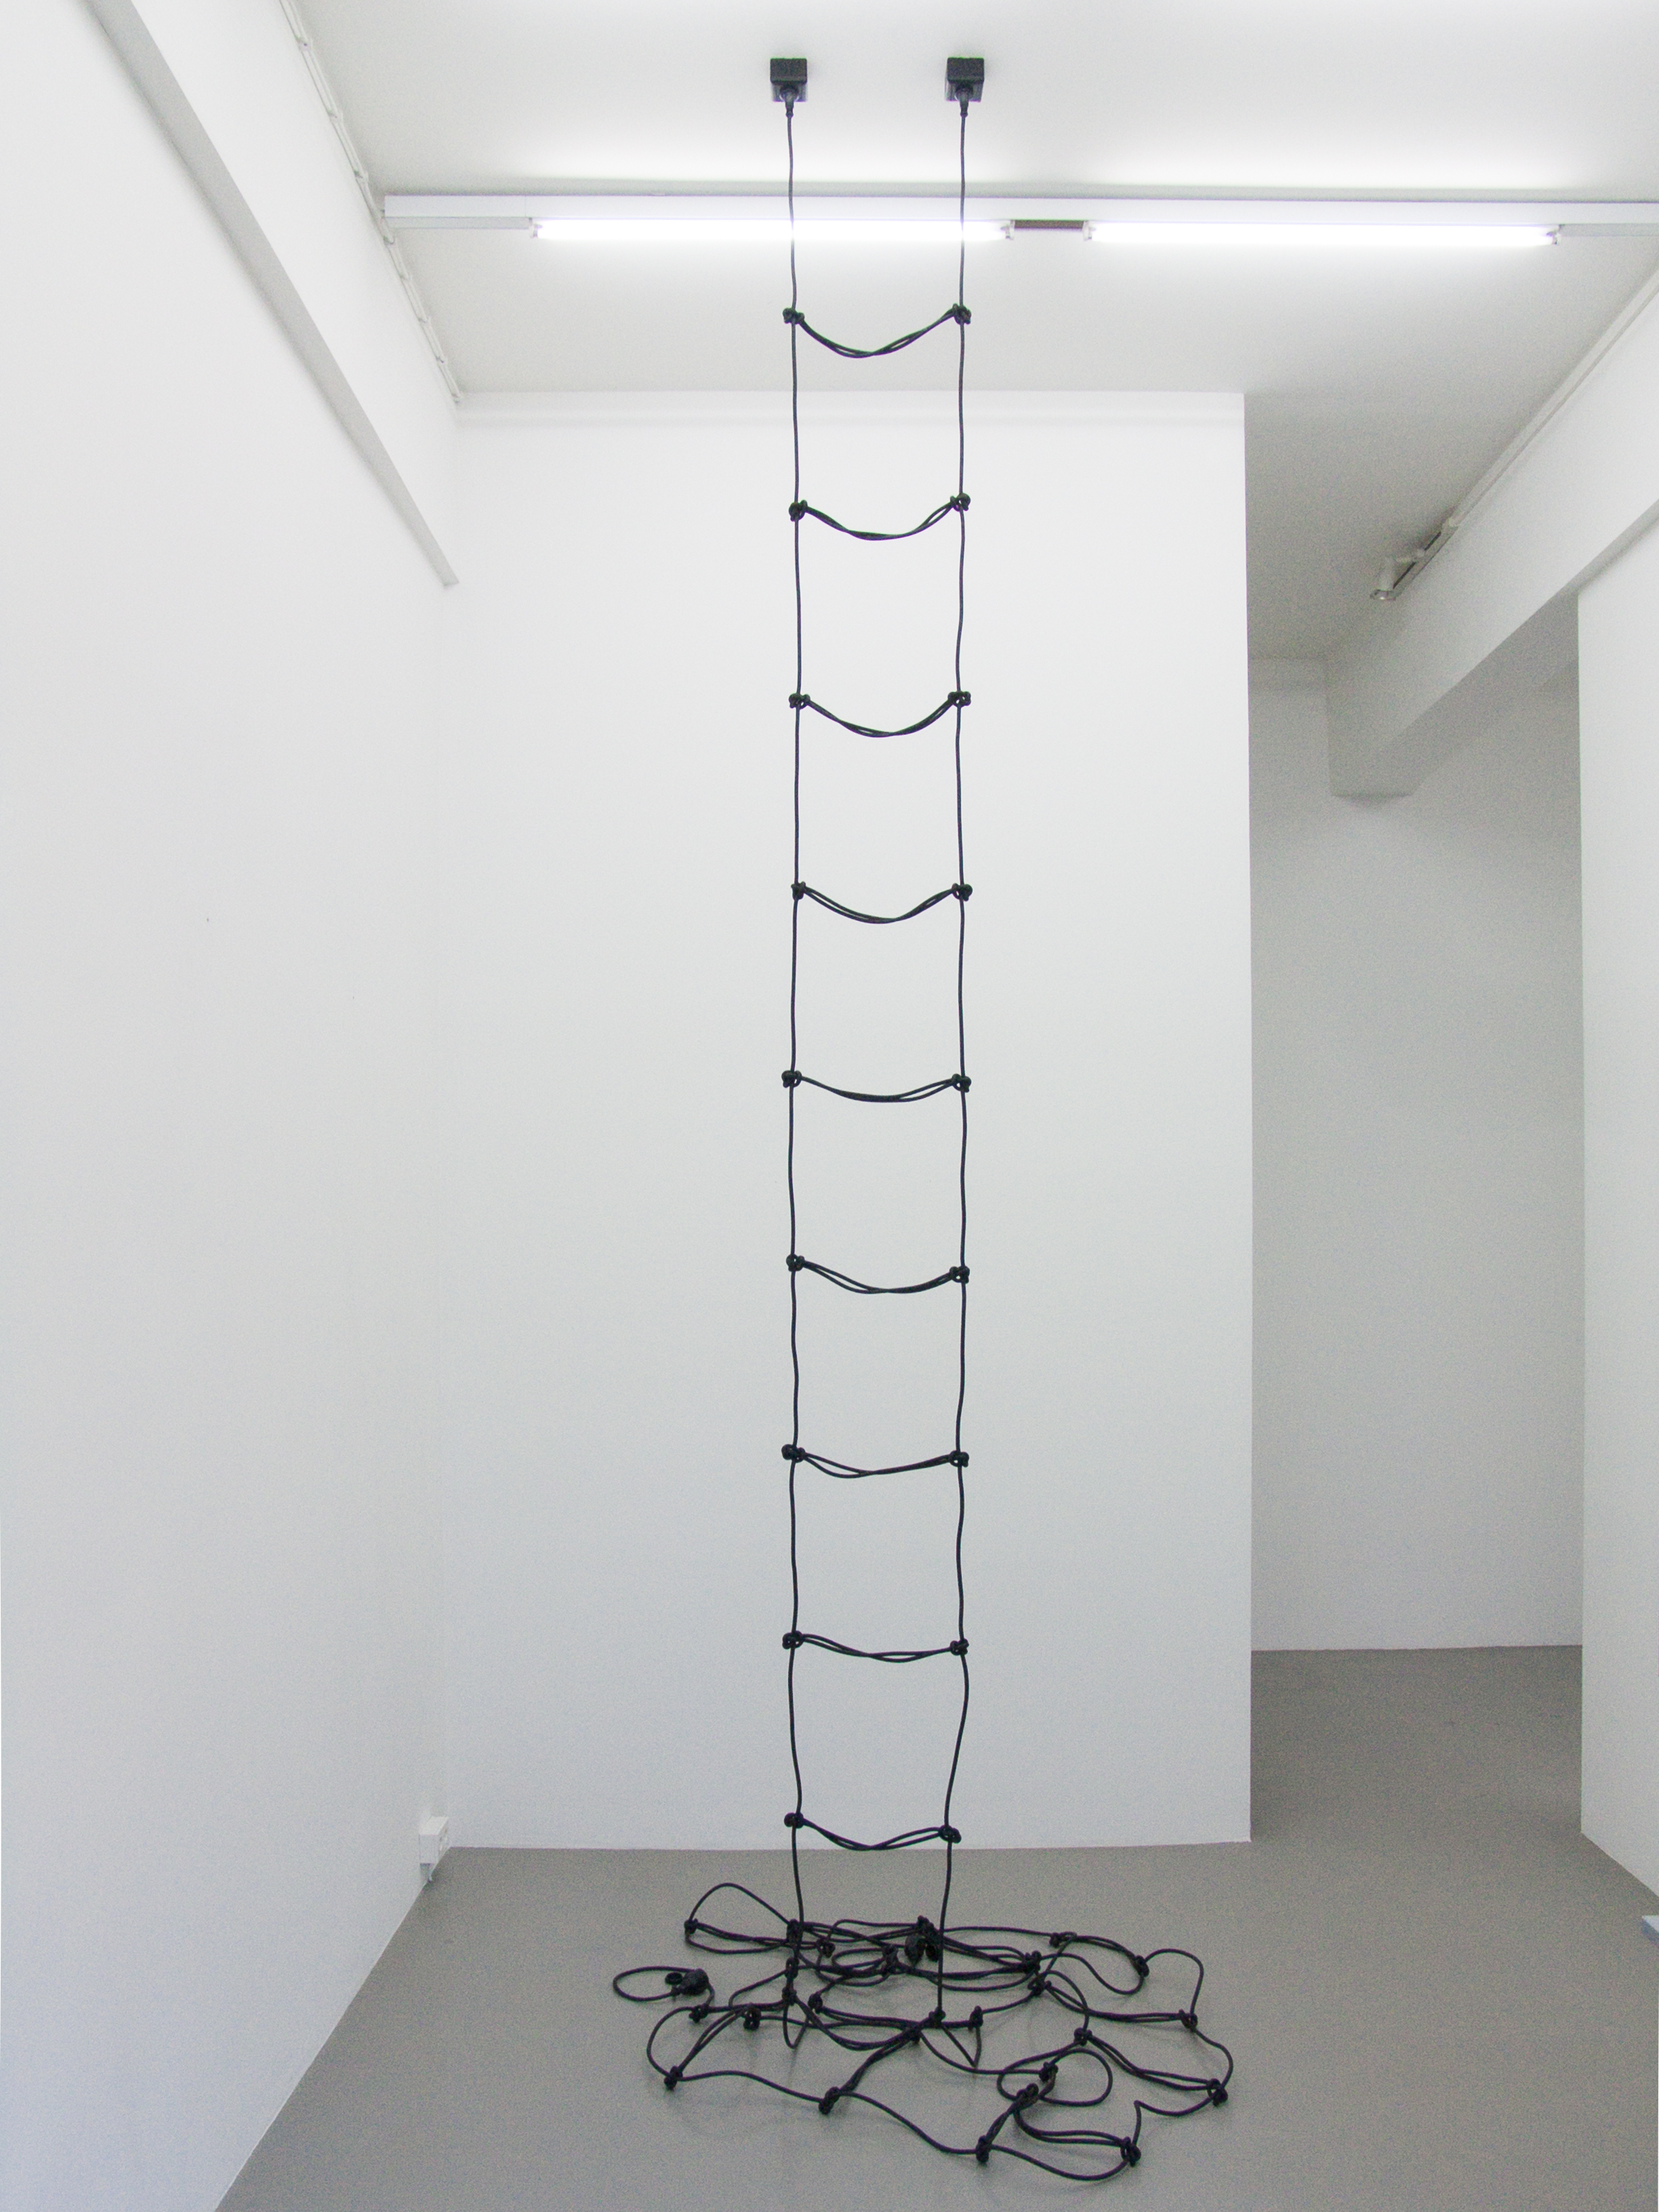 Artwork by Erik Andersen - Leiter 2010 - Black Sculpture - Dimension variable - Installation View